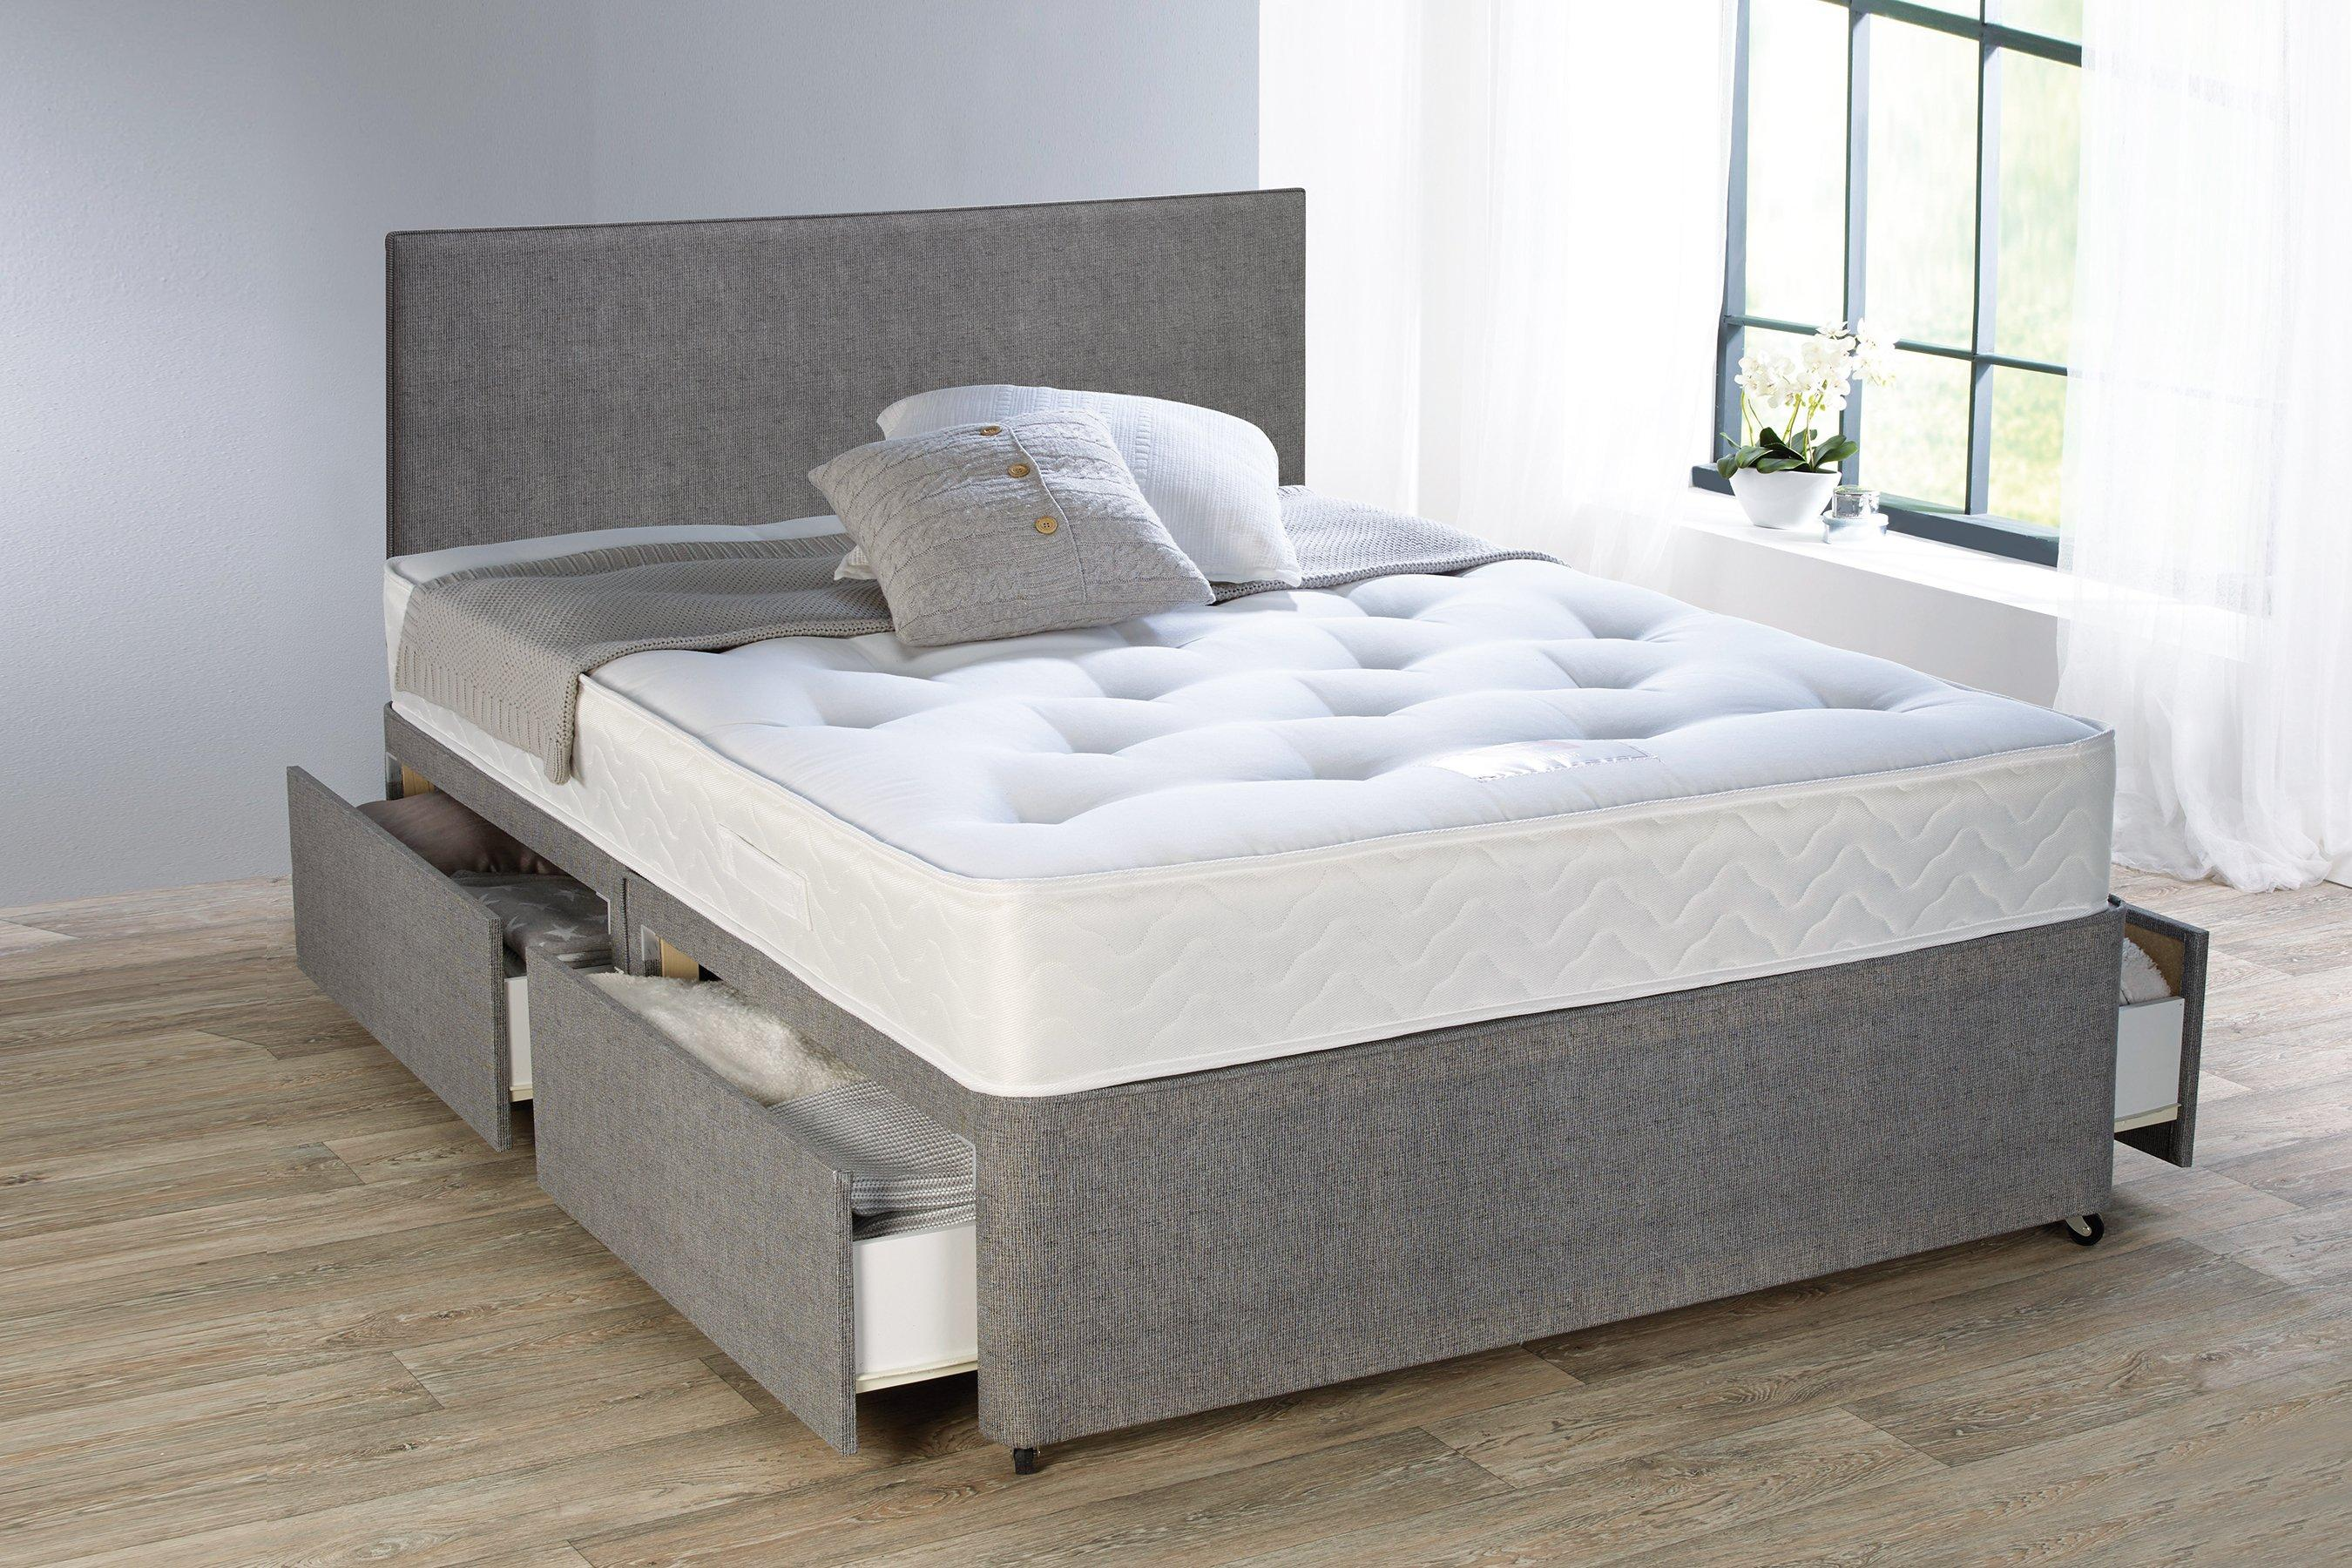 Compare prices for Airsprung Naturals Mattress